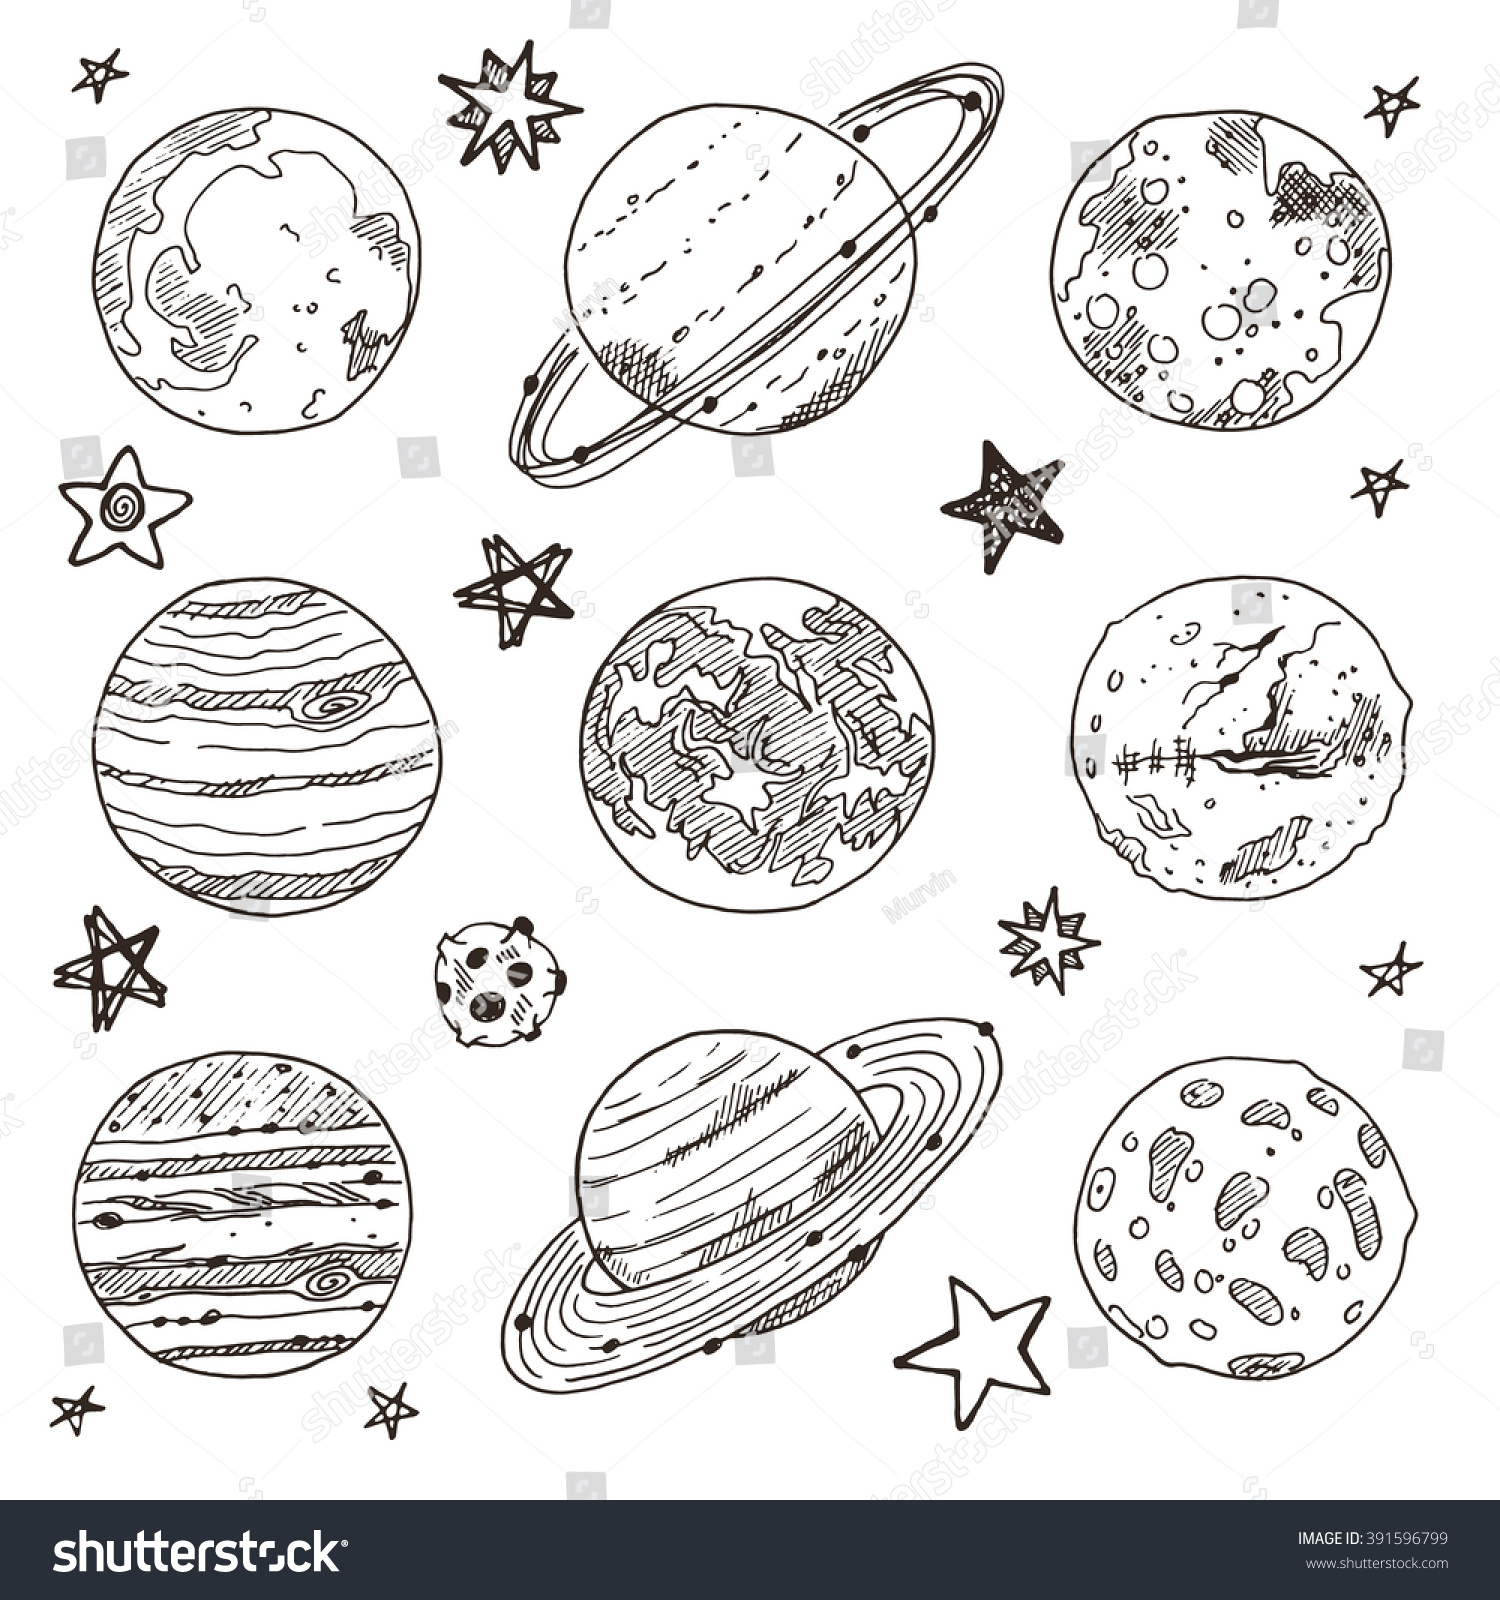 Set Doodle Planet Hand Drawn Vector Stock 391596799